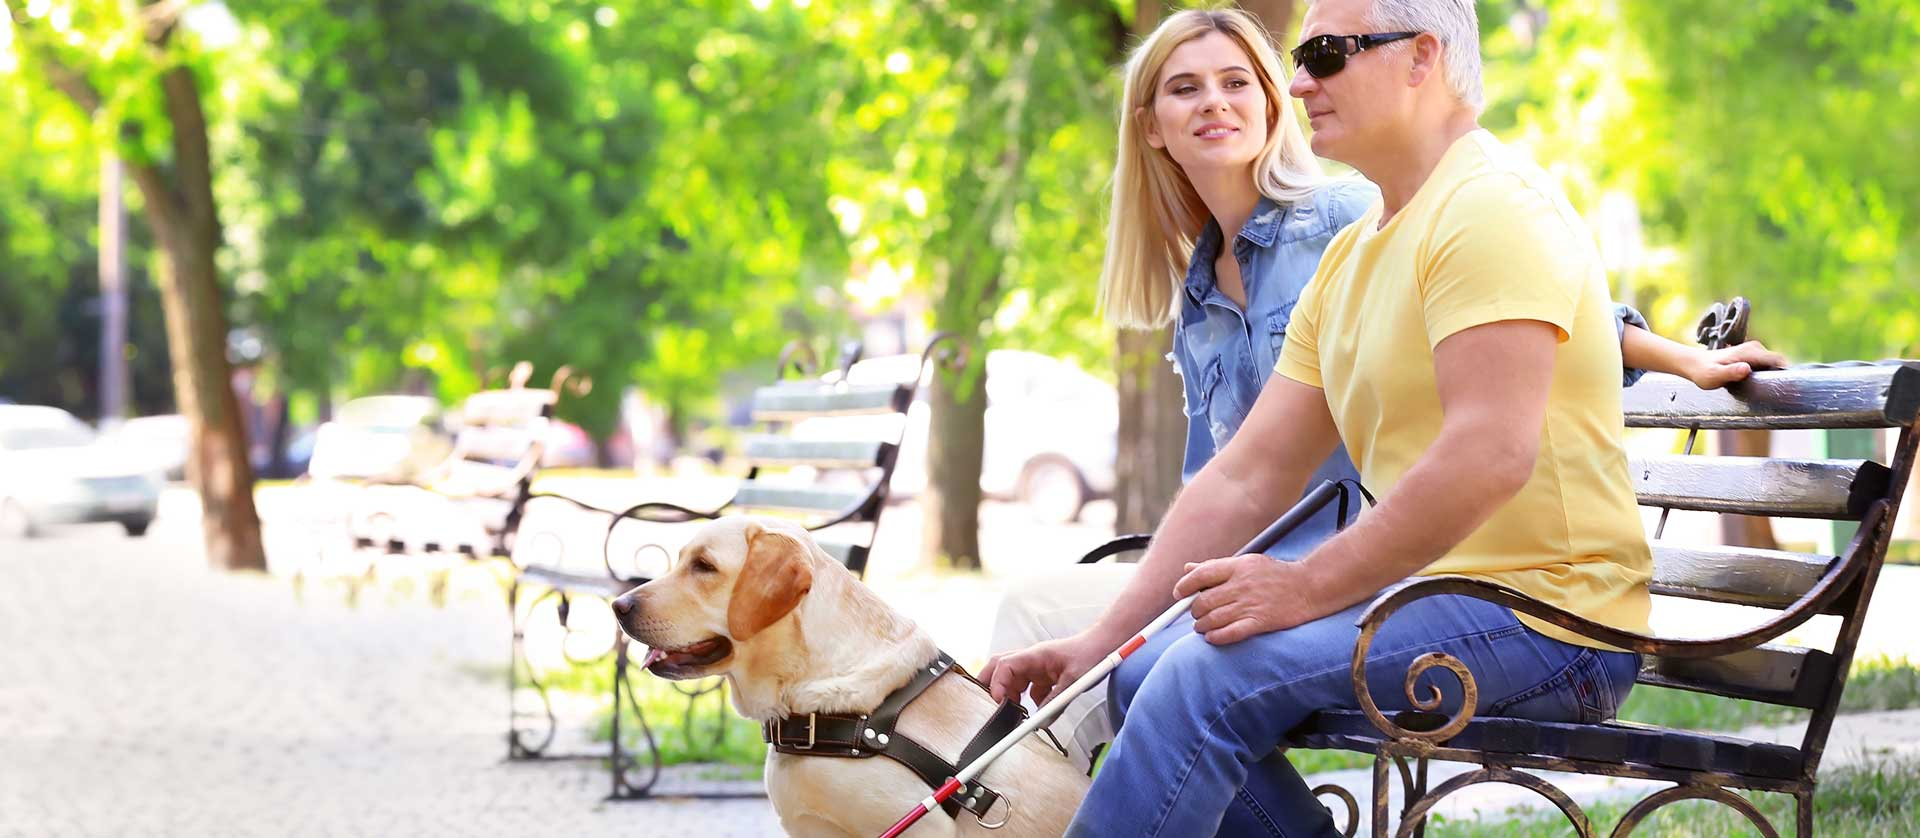 A man and woman sit on a park bench. The man is holding a walking cane and has a guide dog.